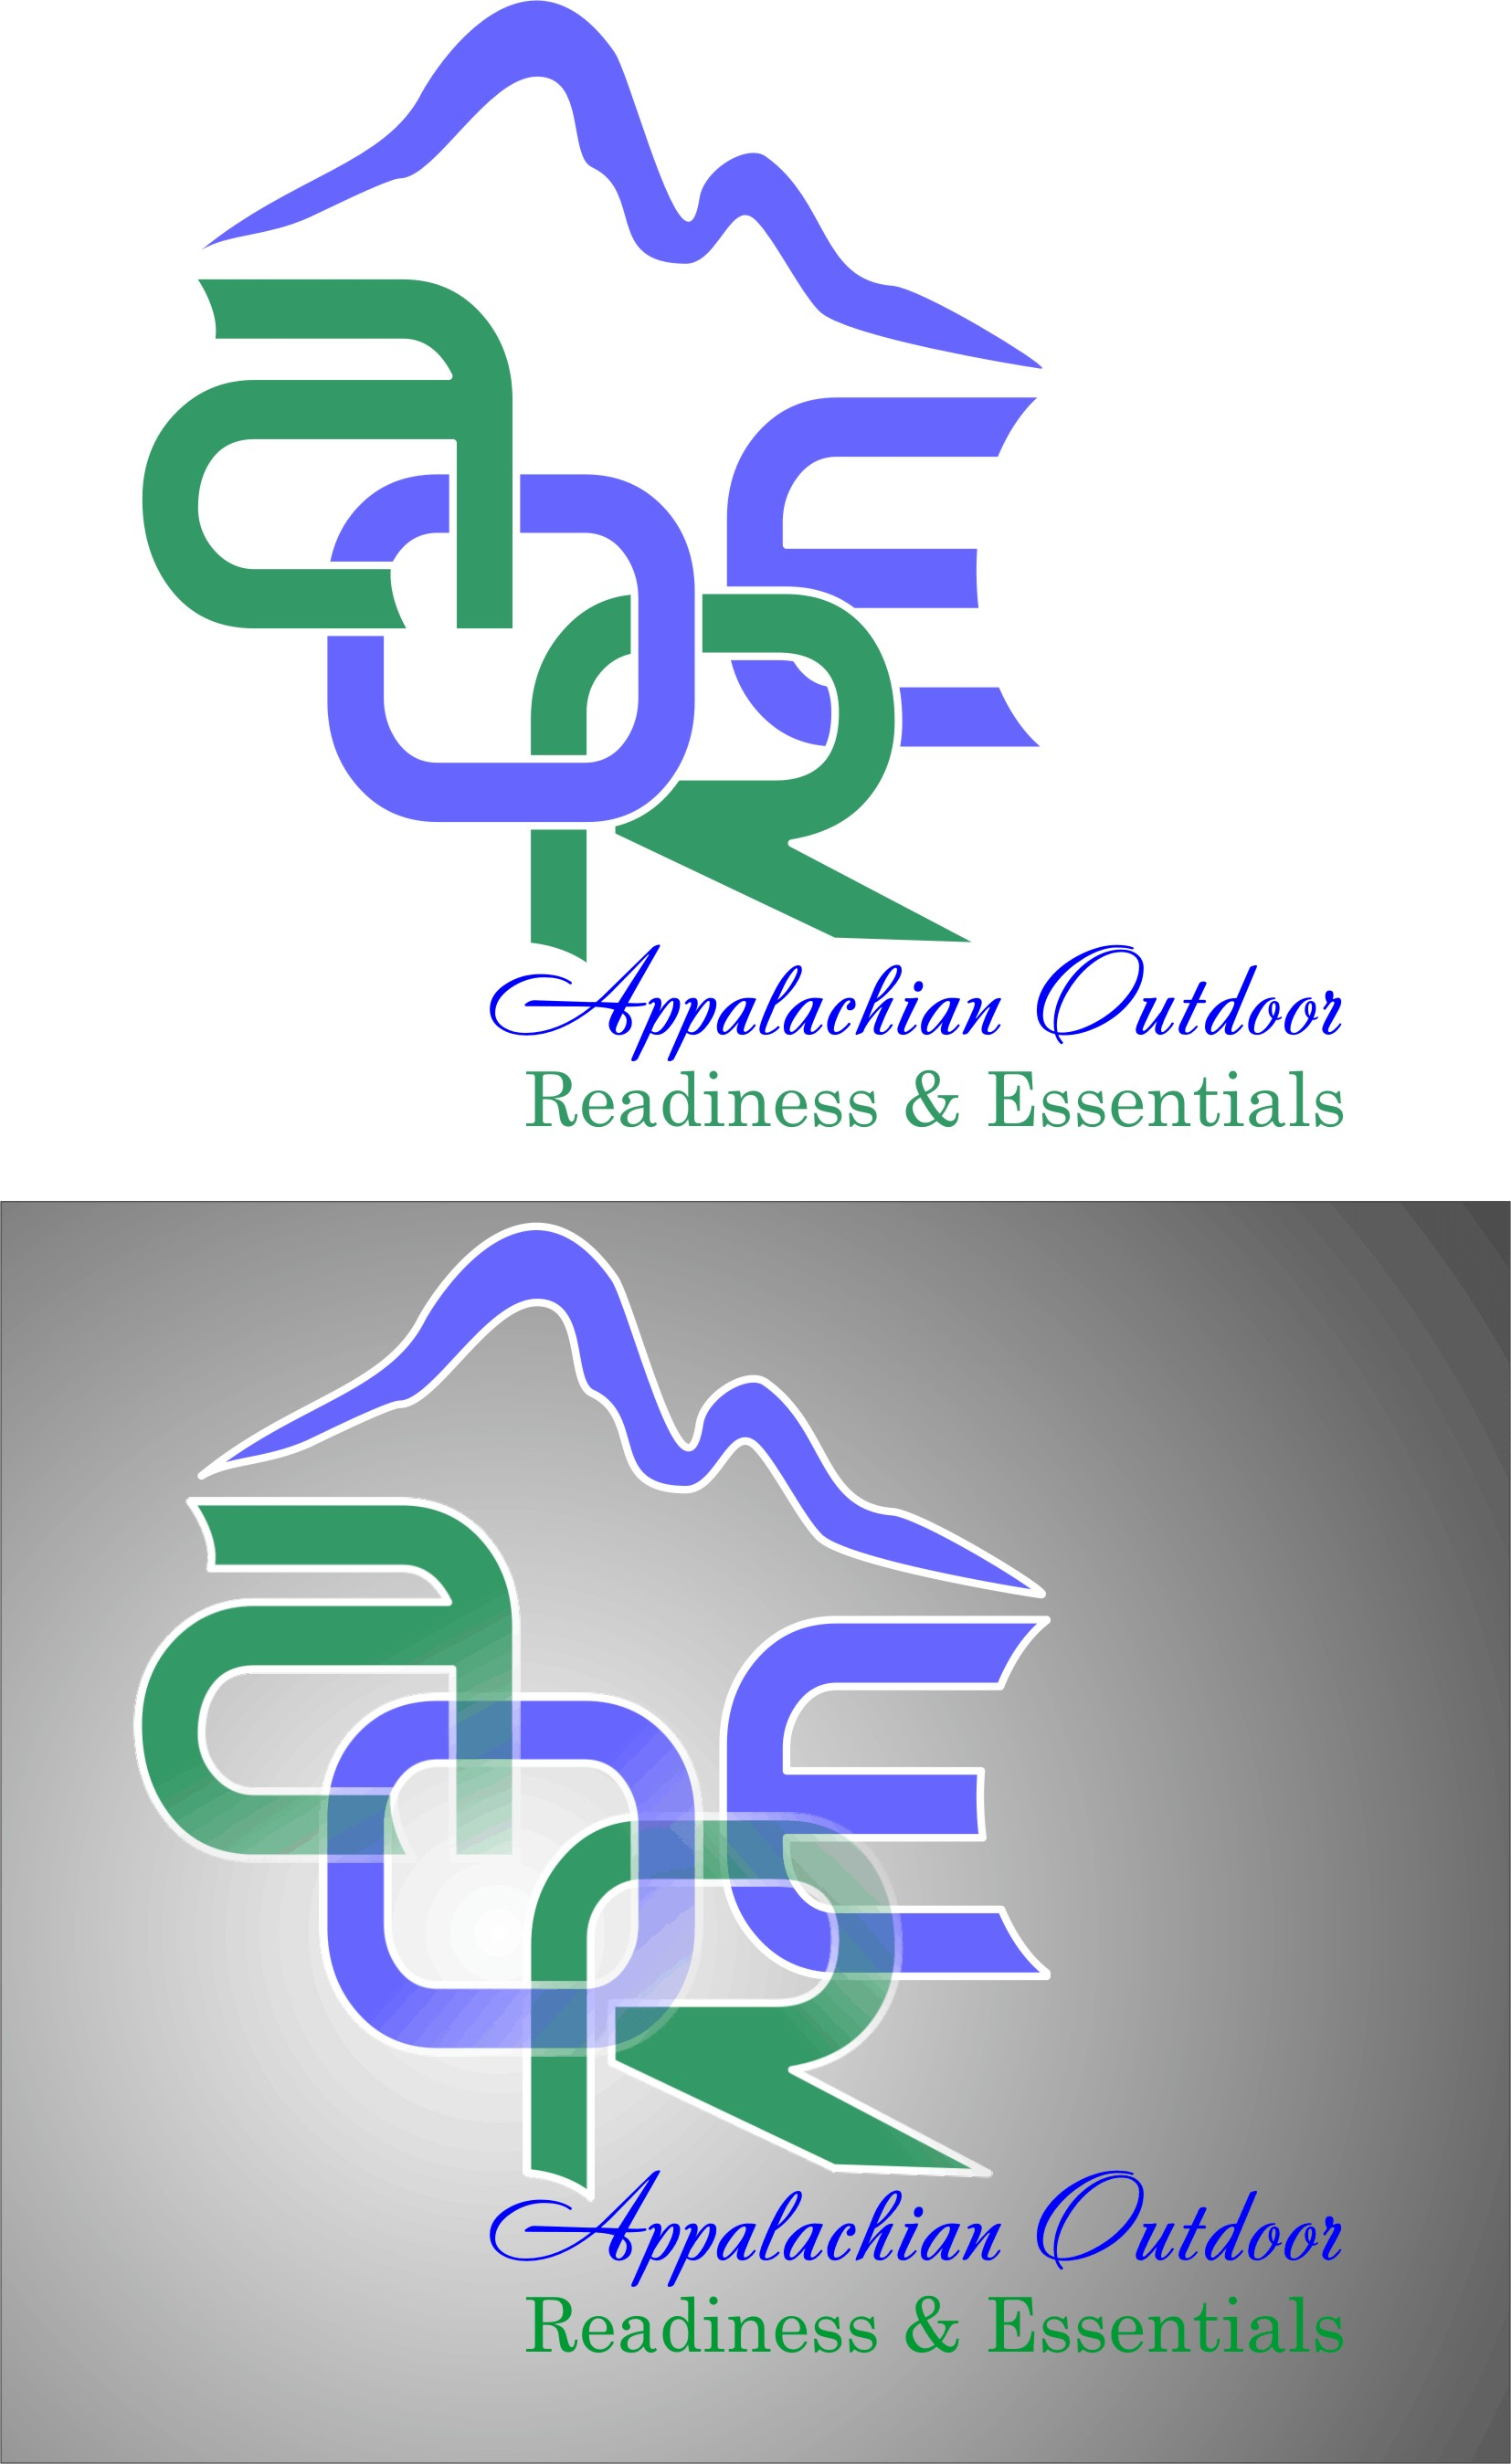 Logo Design by Korsunov Oleg - Entry No. 15 in the Logo Design Contest Imaginative Logo Design for Appalachian Outdoor Readiness & Essentials.